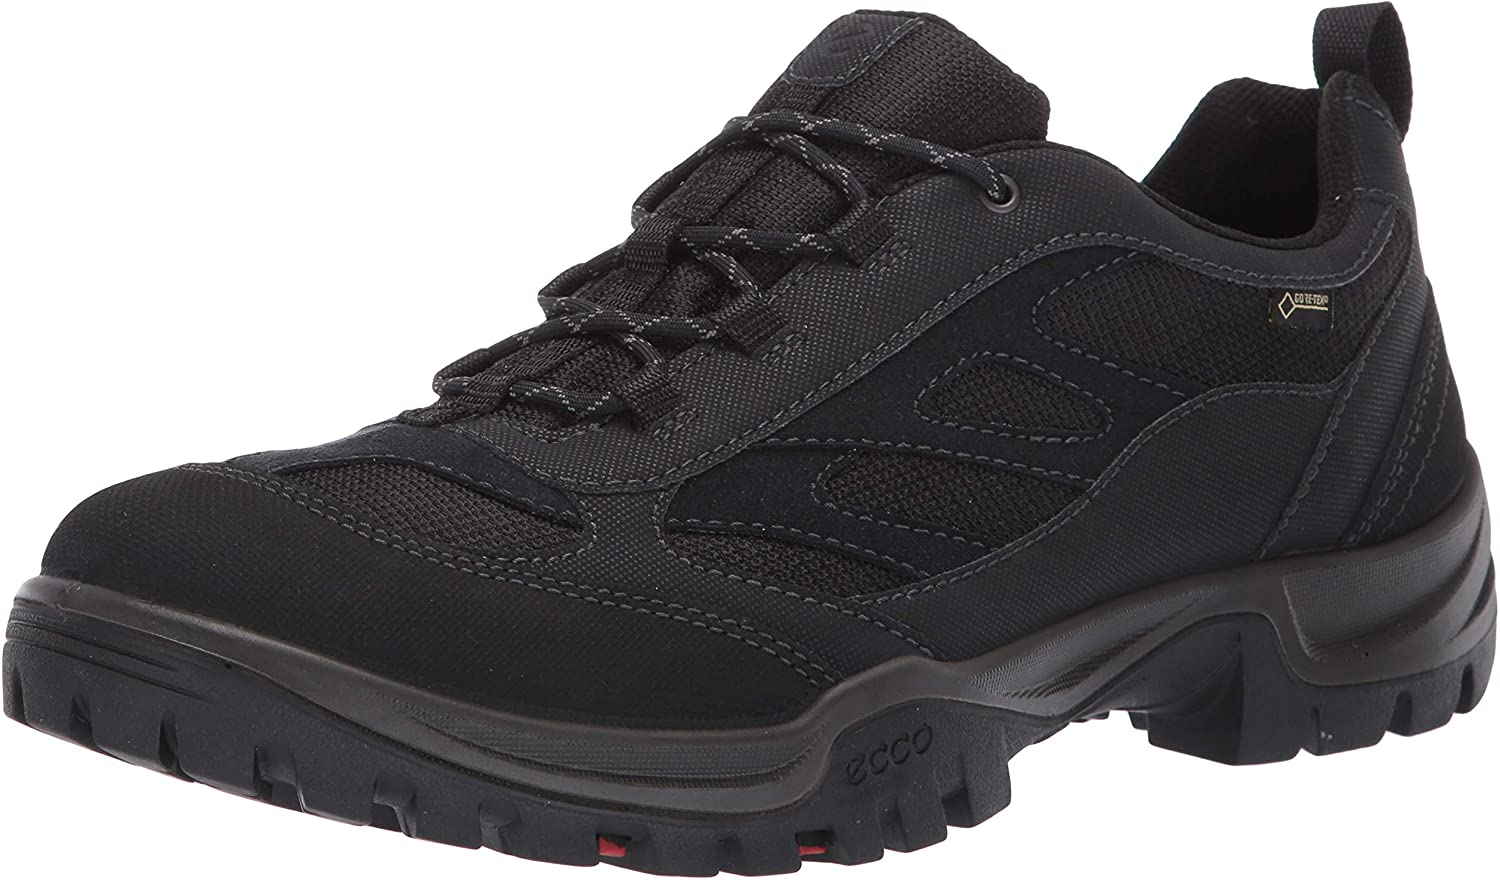 ECCO Men's Xpedition Iii Gore-tex Low Hiking Shoe